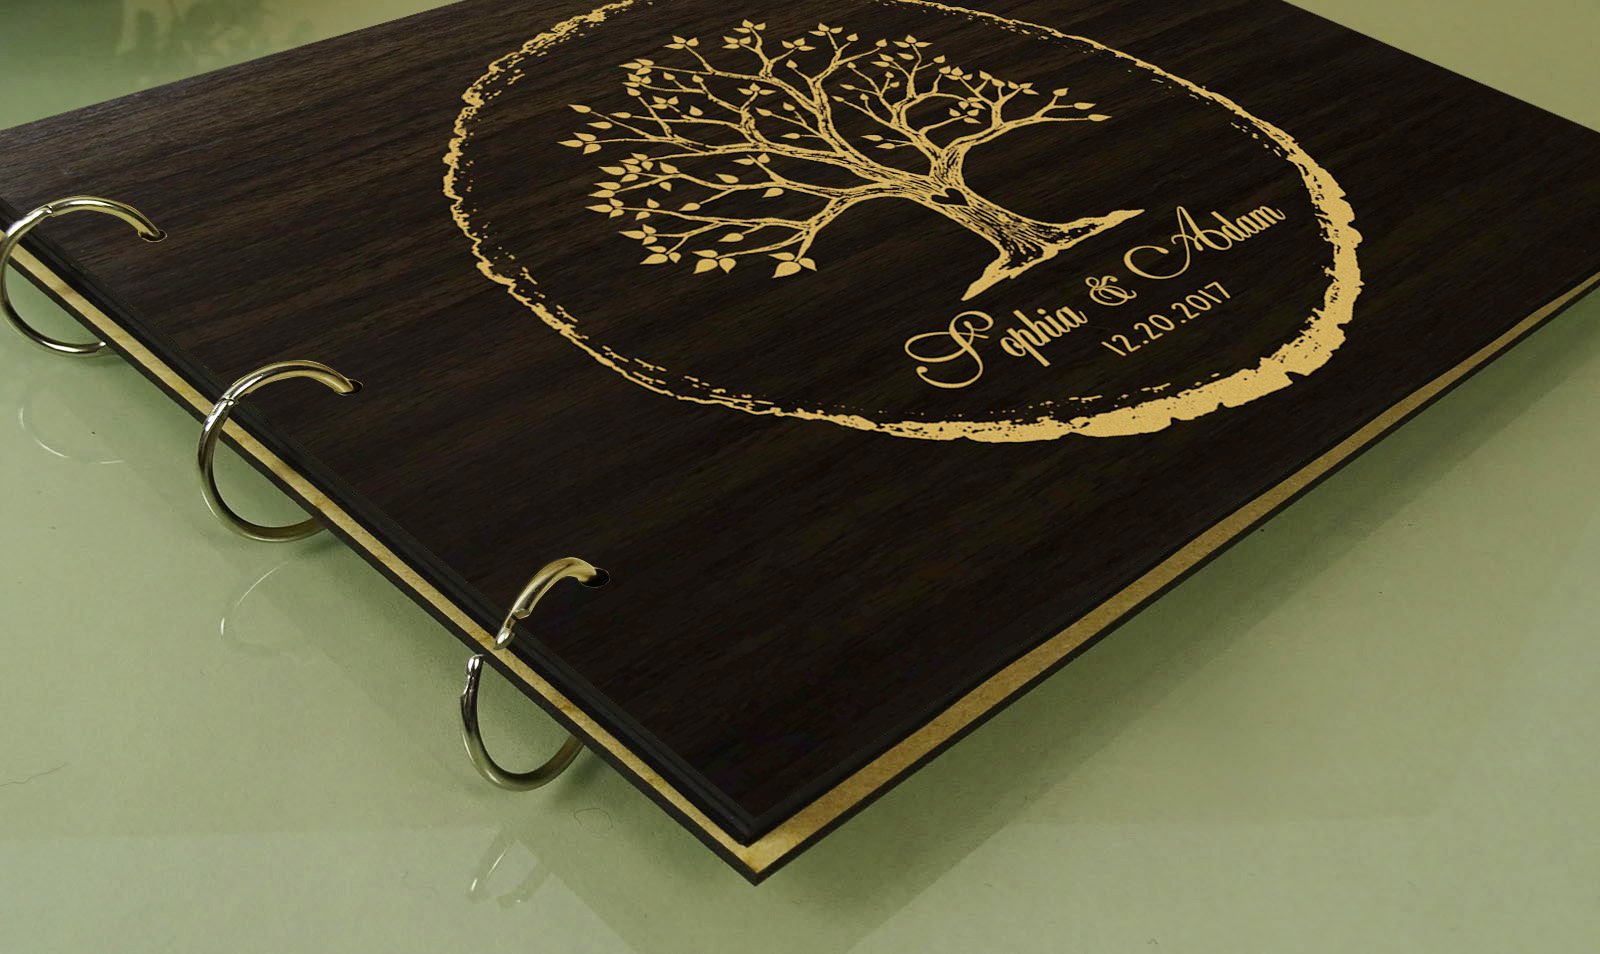 Handmade Tree Design Personalised Wooden Guest Book Rustic Wedding Wood Engraved Scrapbook by Darling Souvenir (Image #2)